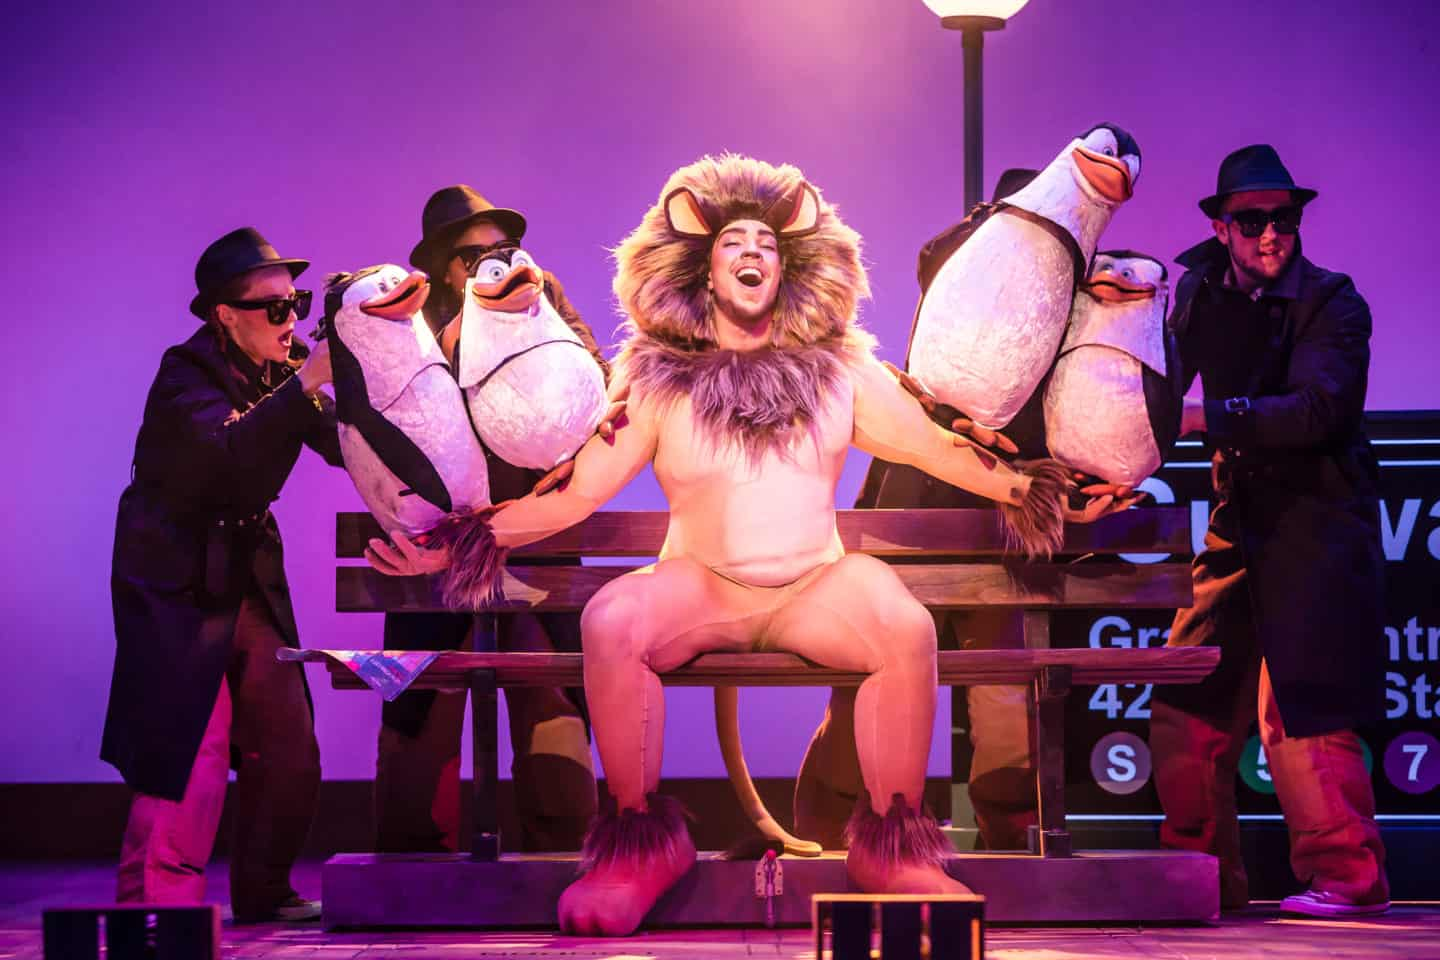 Madagascar at Malvern theatres Alex the lion and penguins